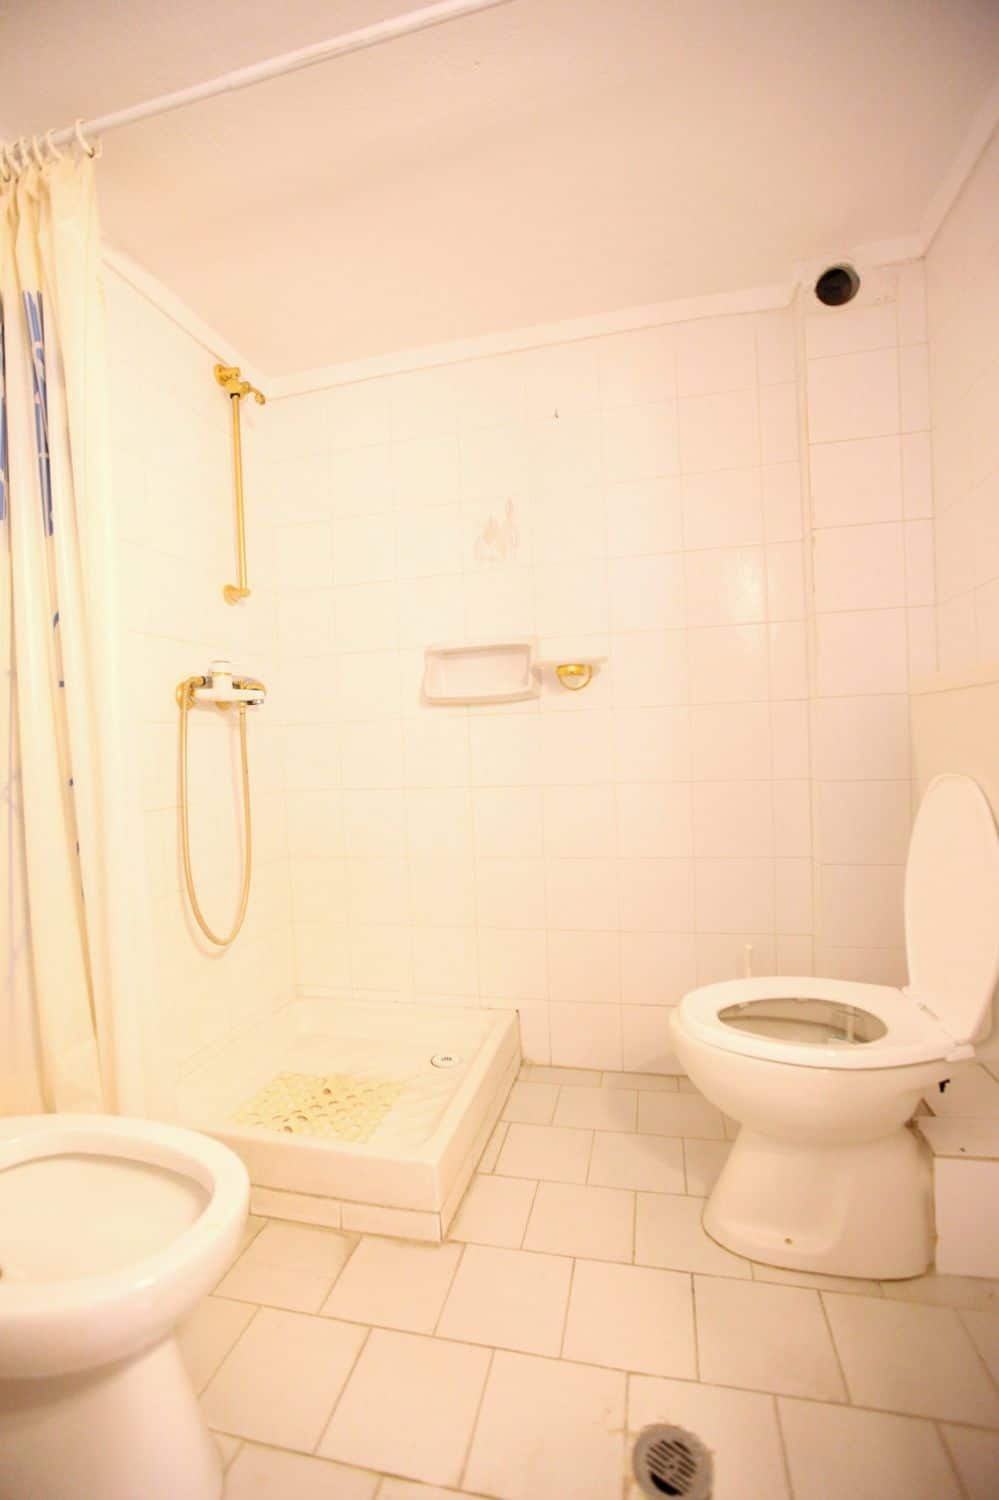 August Bathroom 2 with Shower and WC August toilet